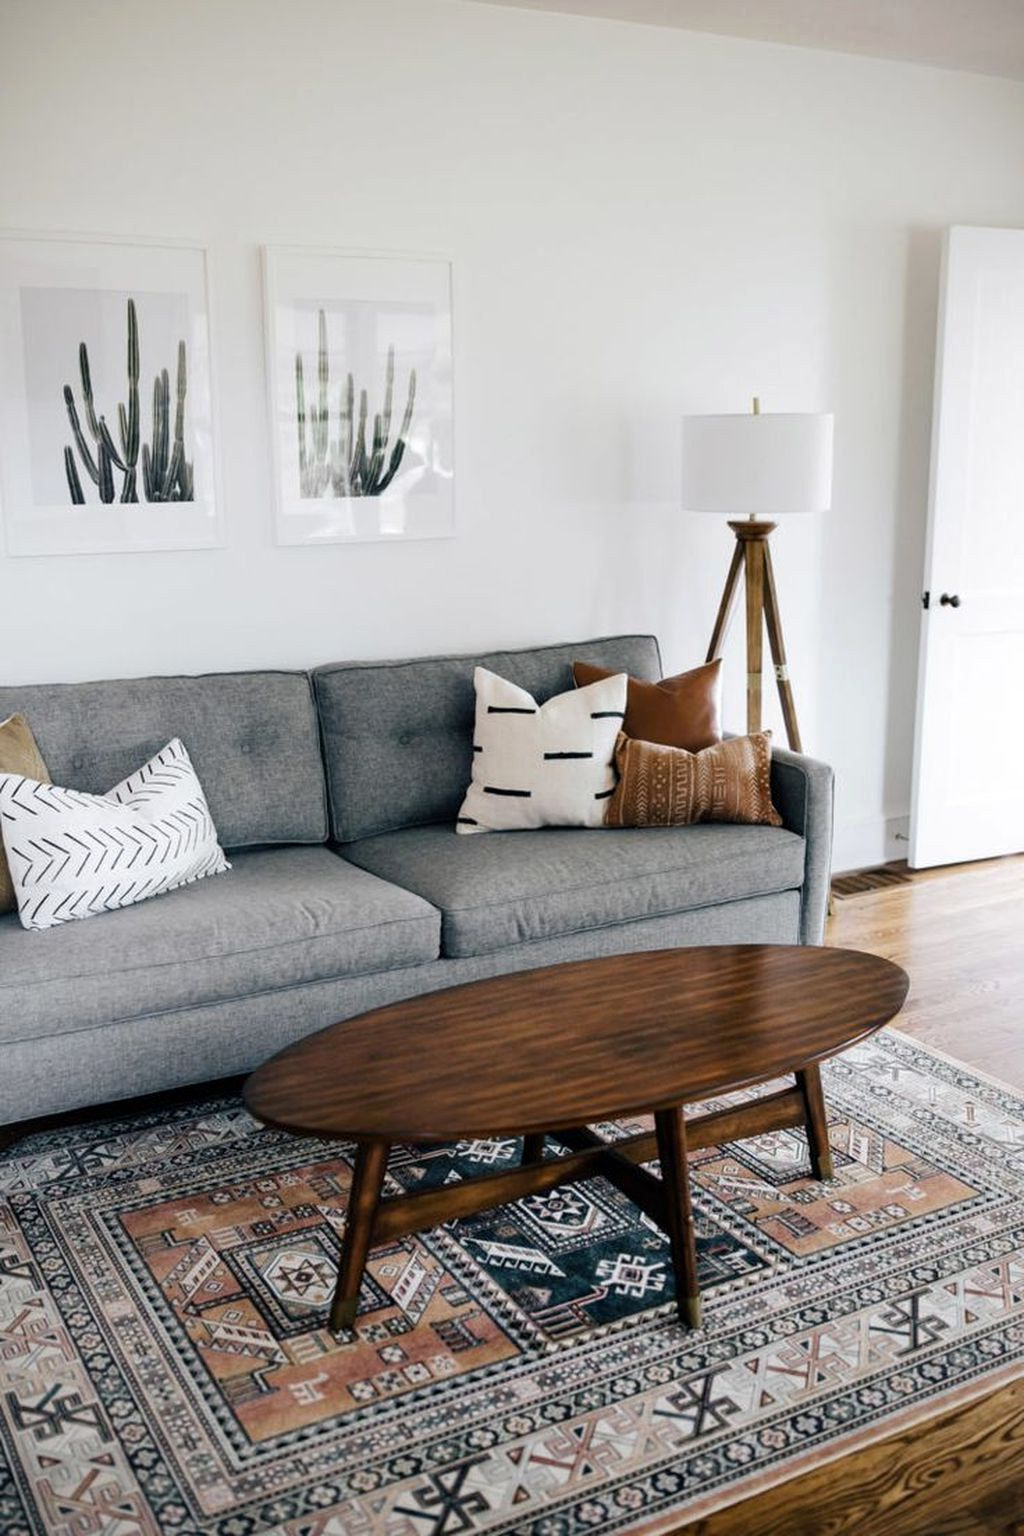 28 Beautiful Simple Apartment Decoration Ideas 25 Best Inspiration Ideas That You Want In 2020 Industrial Interior Style Apartment Decor Living Room Designs #simple #furniture #for #living #room